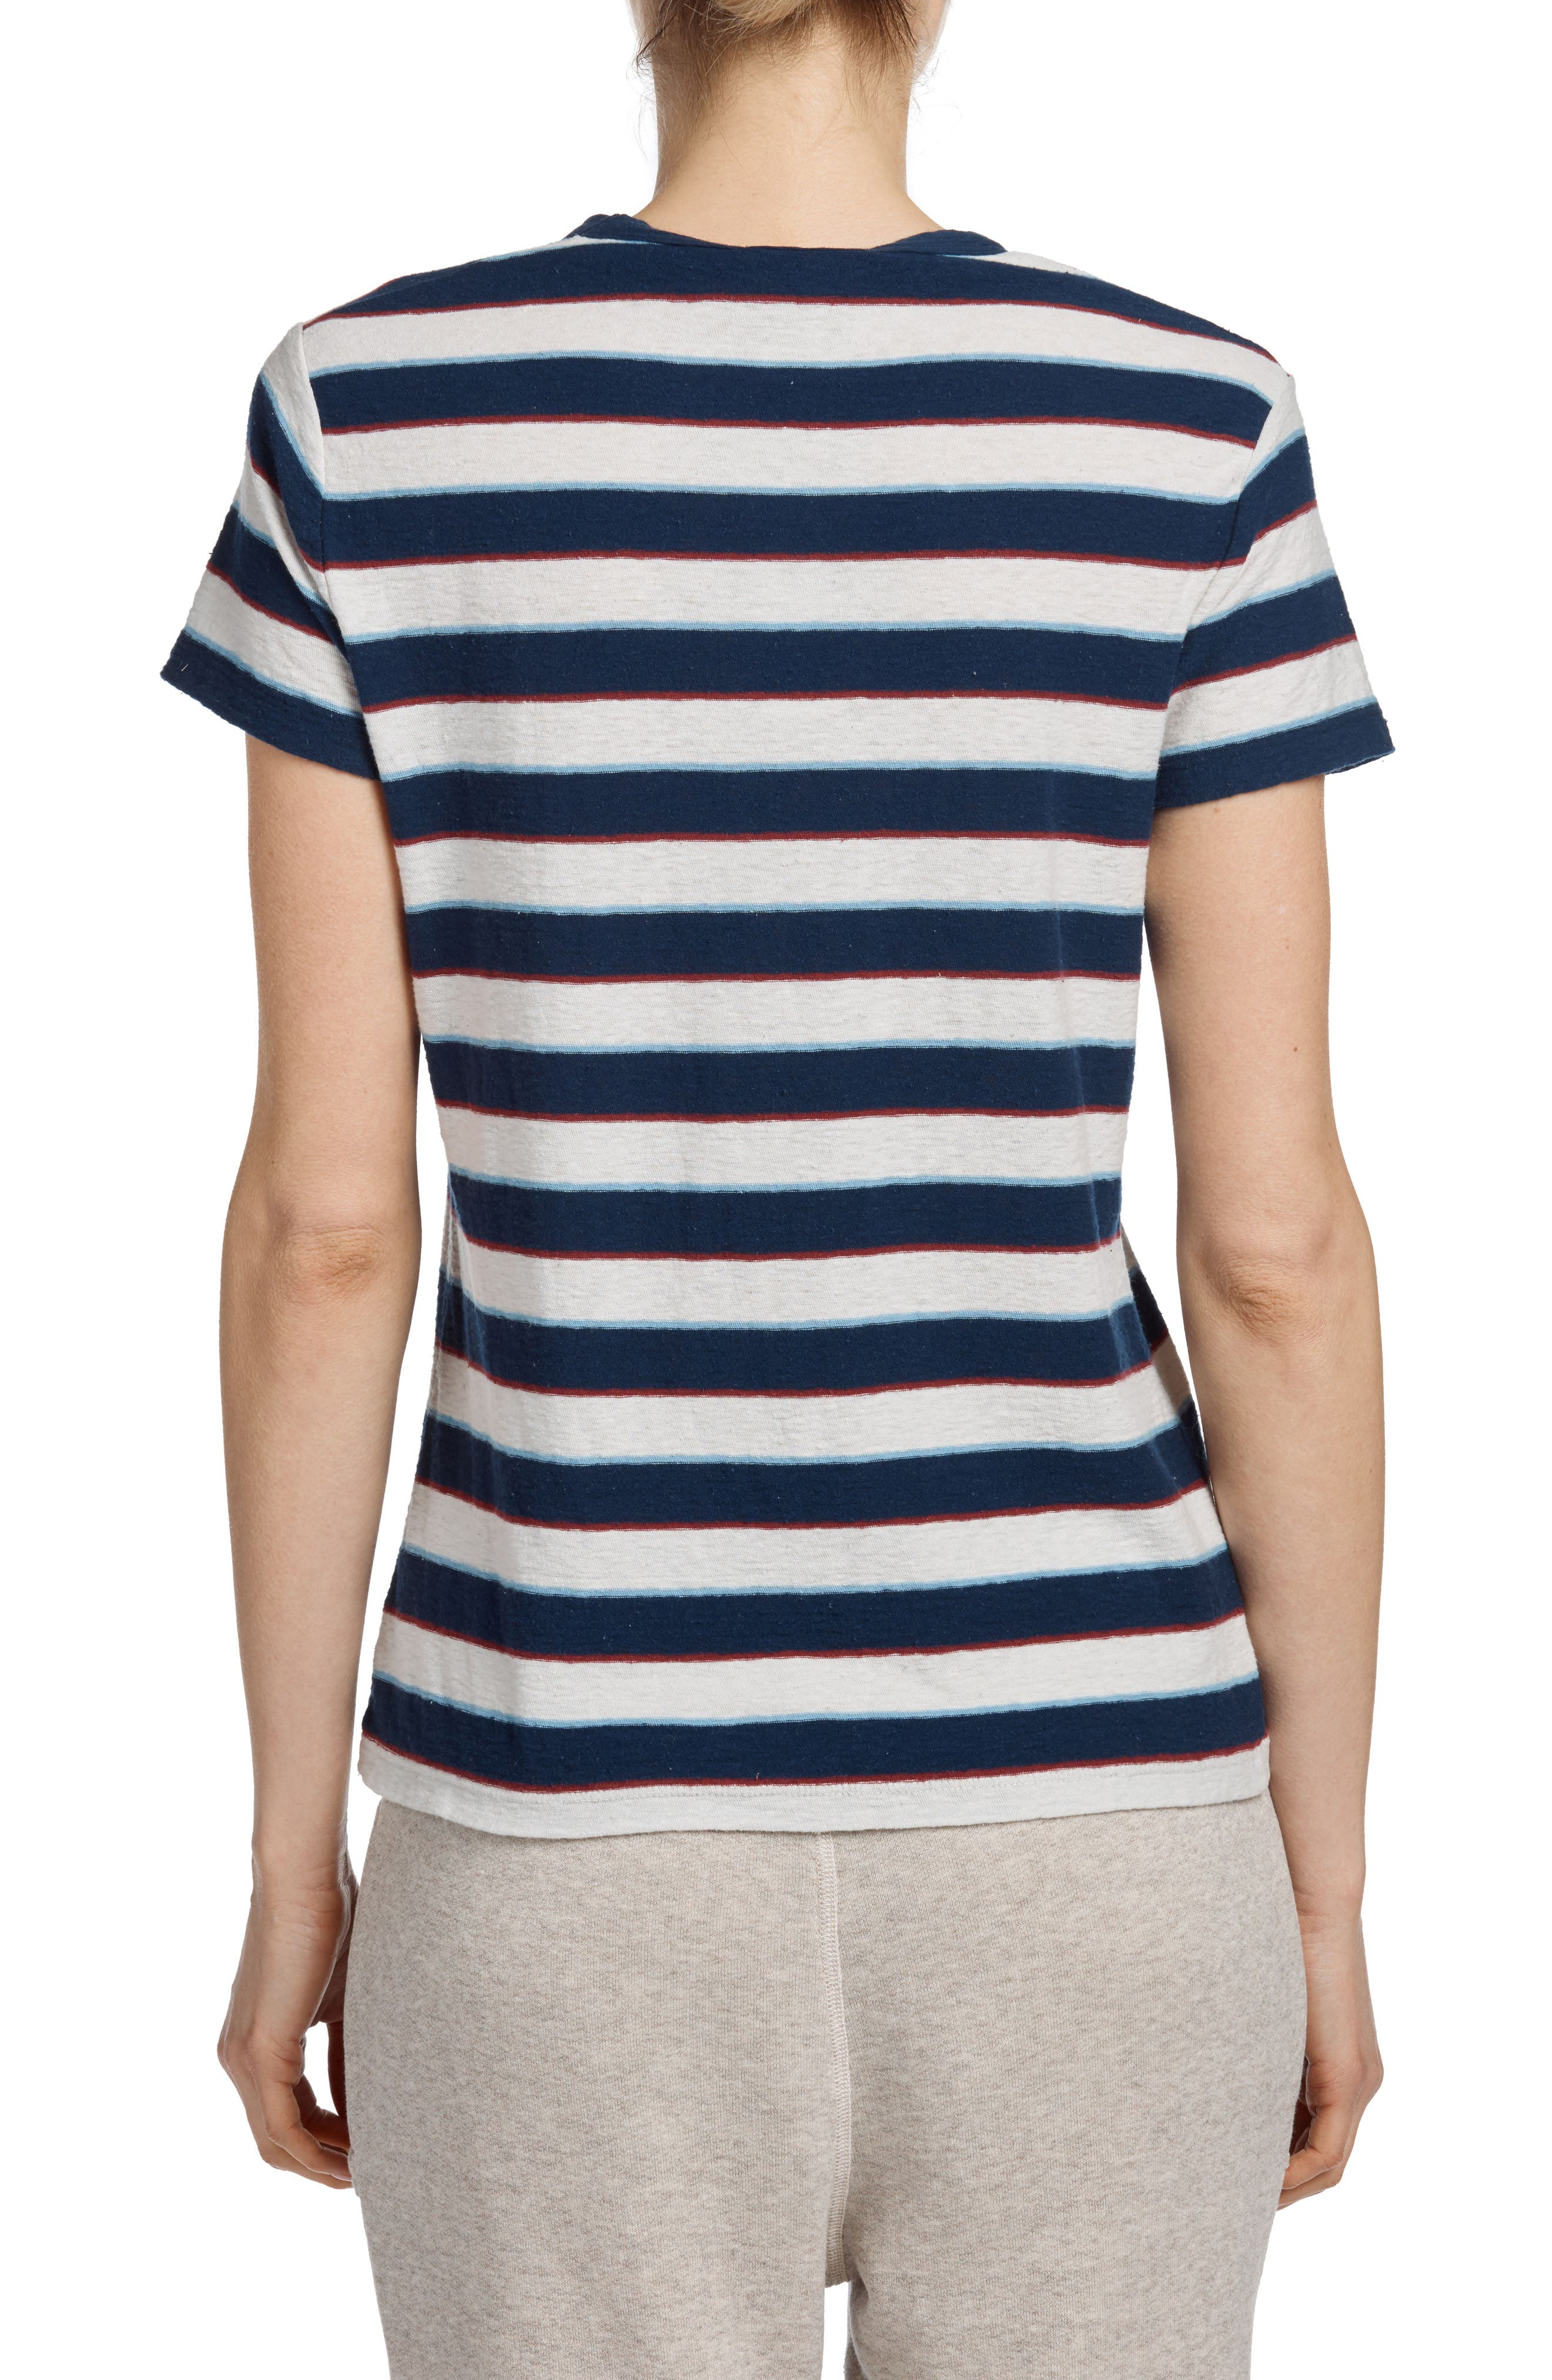 Shrunken Retro Tee,                             Alternate thumbnail 2, color,                             Navy Stripe